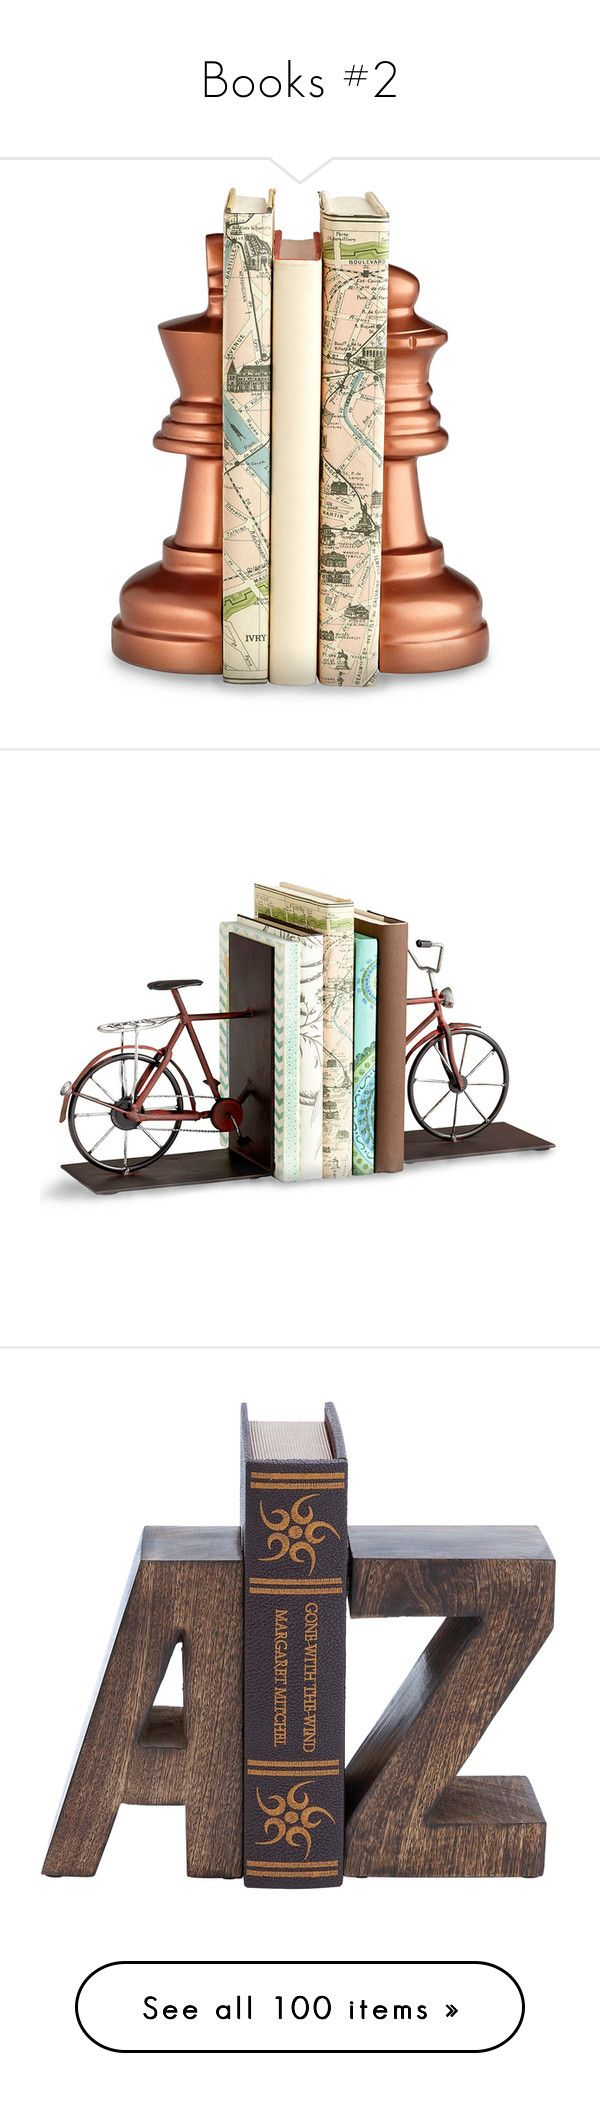 """""""Books #2"""" by montse-gallardo ❤ liked on Polyvore featuring home, home decor, small item storage, chess, cyan design, transitional home decor, decor, bicycle sculpture, wire sculpture and bicycle bookends"""